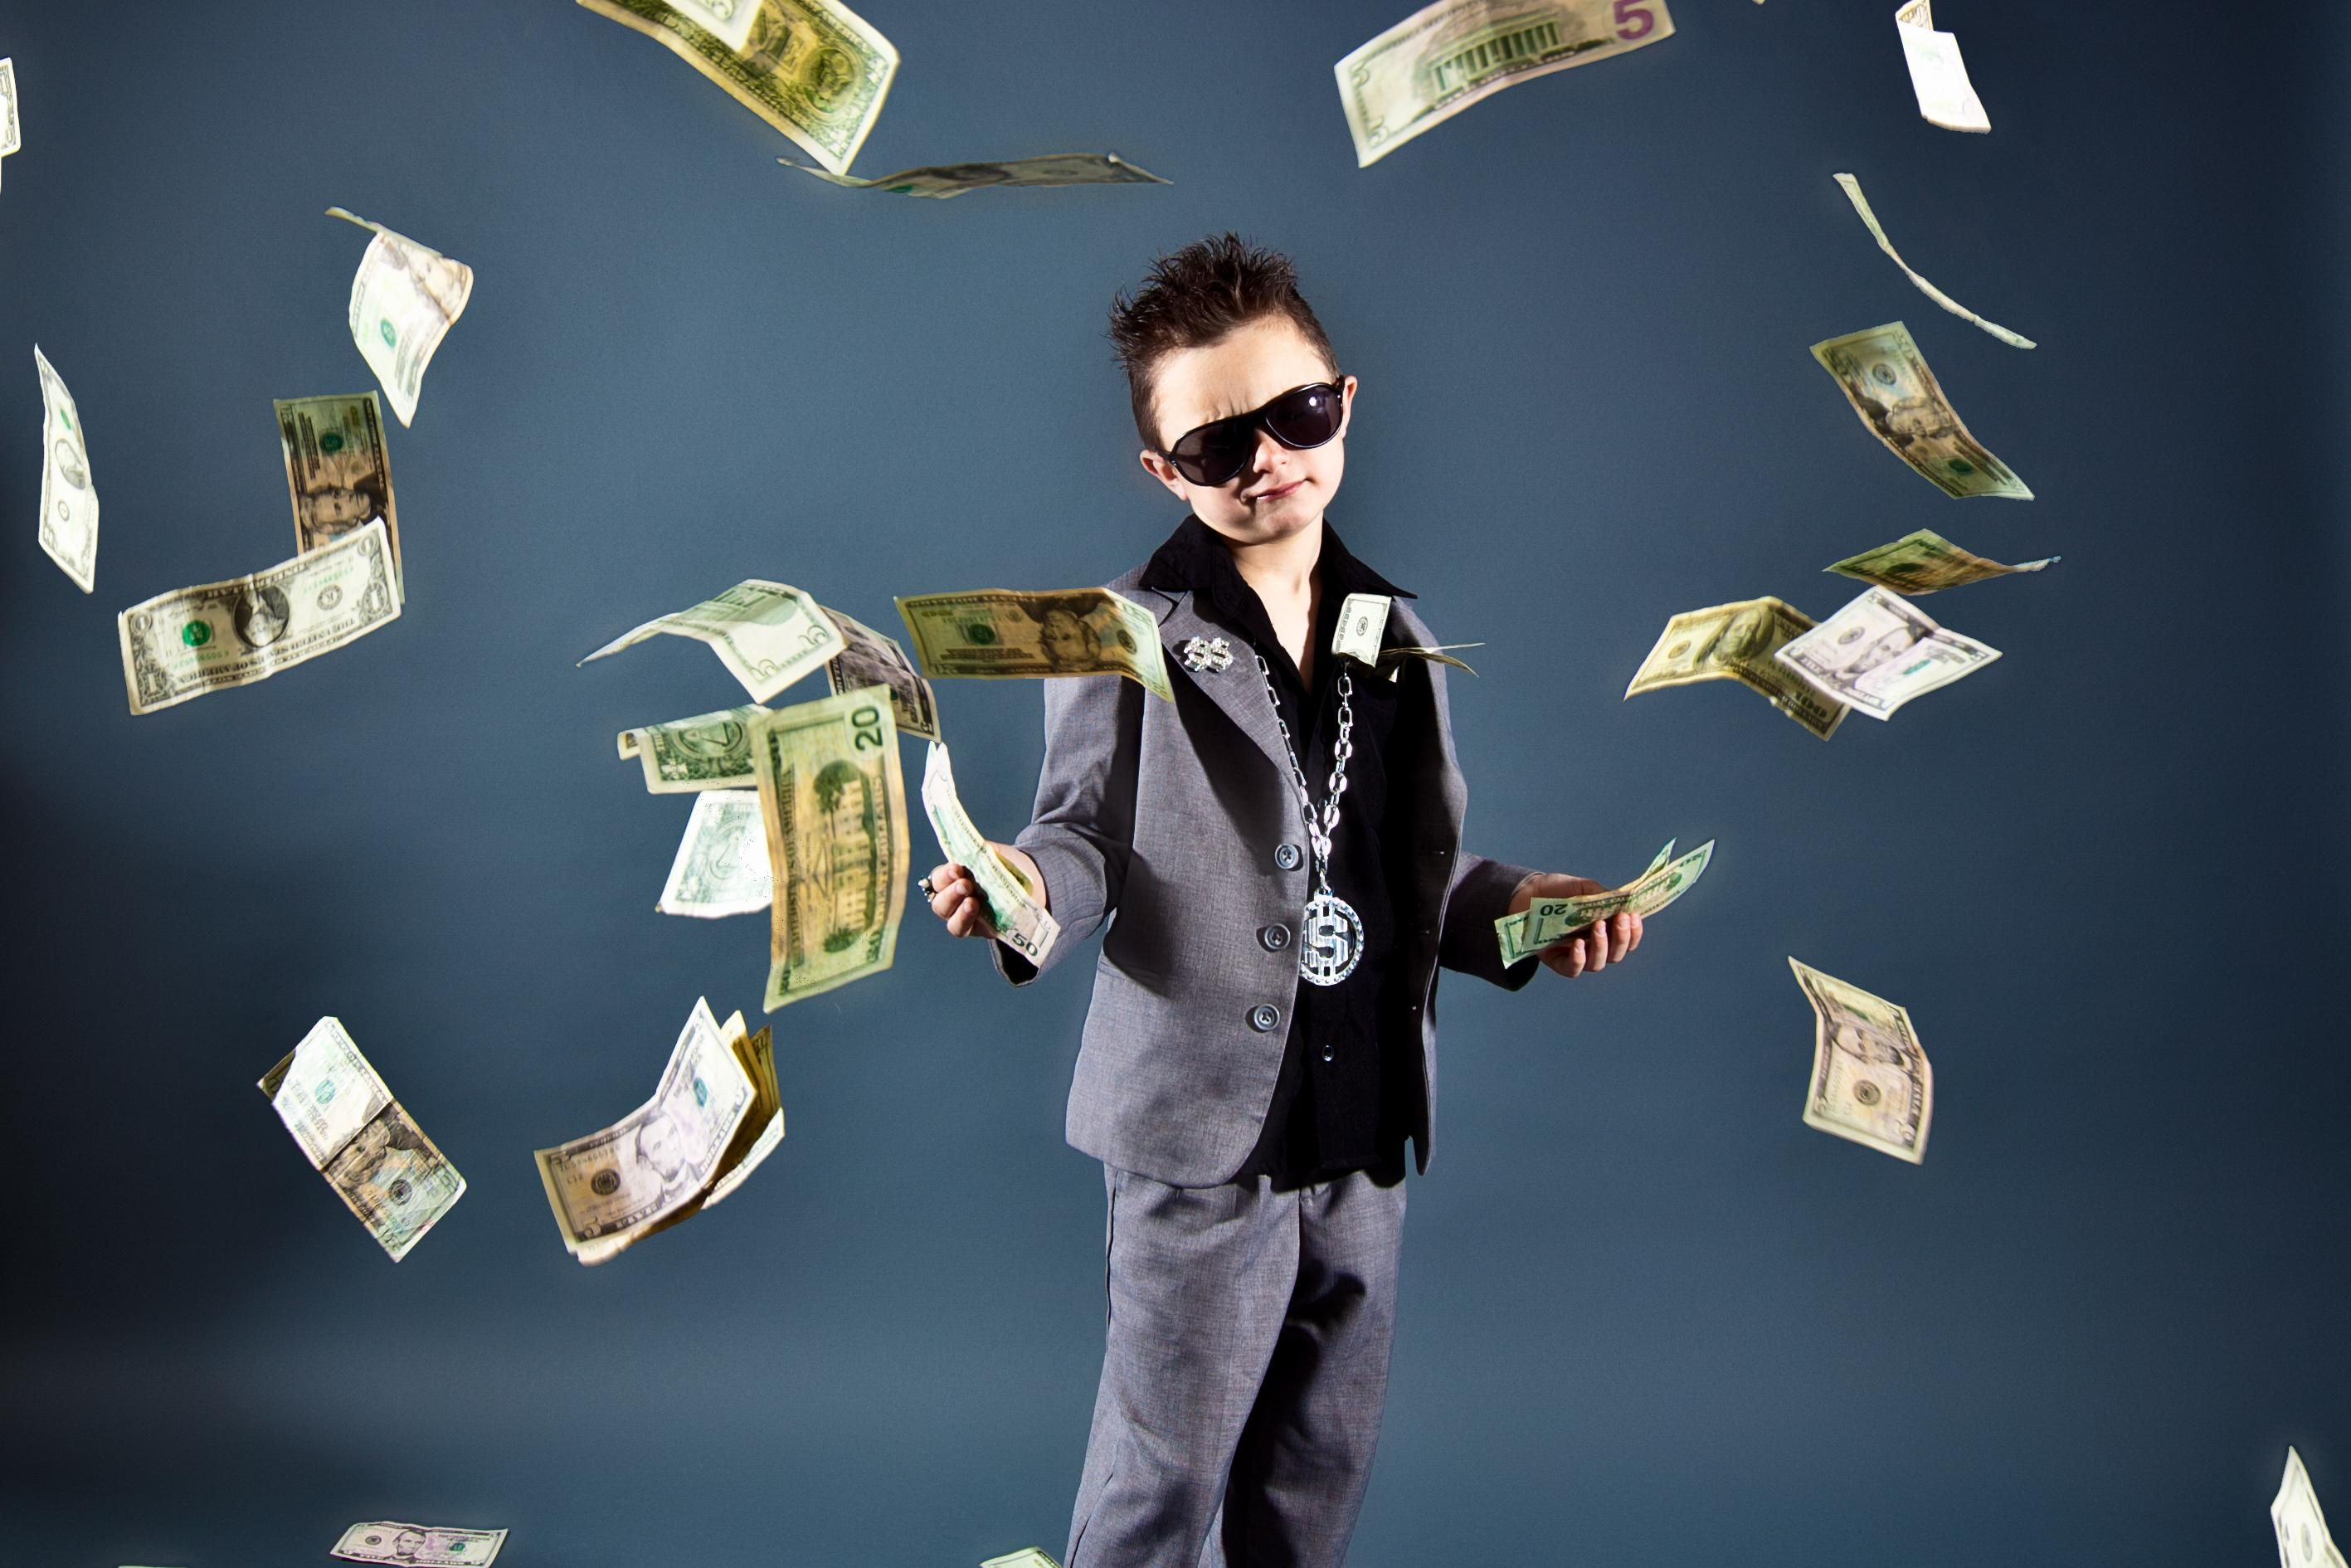 10 Highest Paying Jobs Even An 8th Grader Could Do